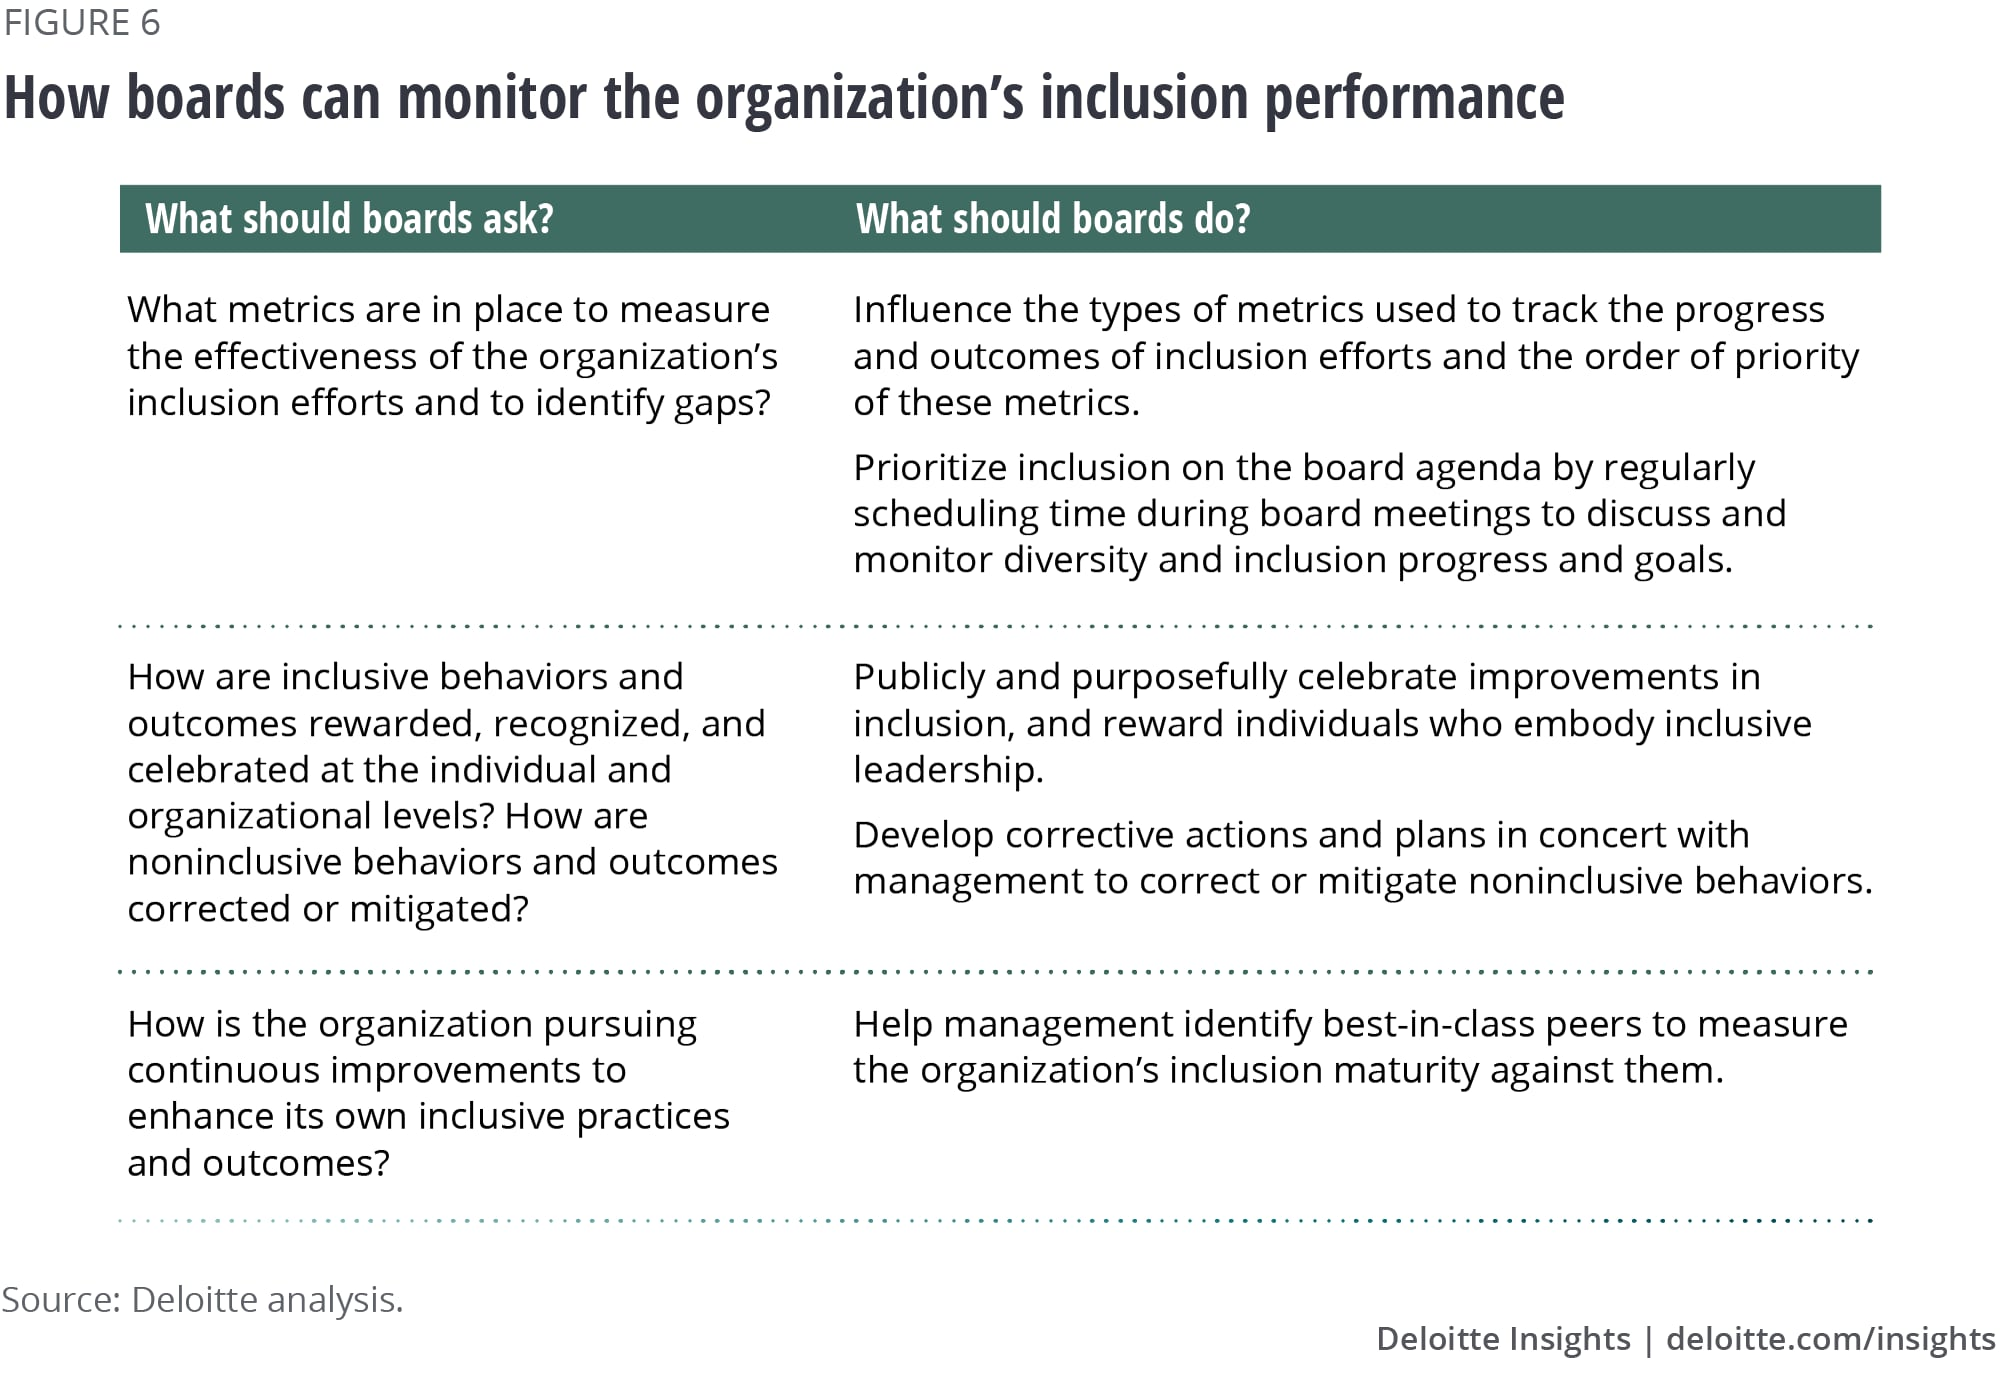 How boards can monitor the organization's inclusion performance